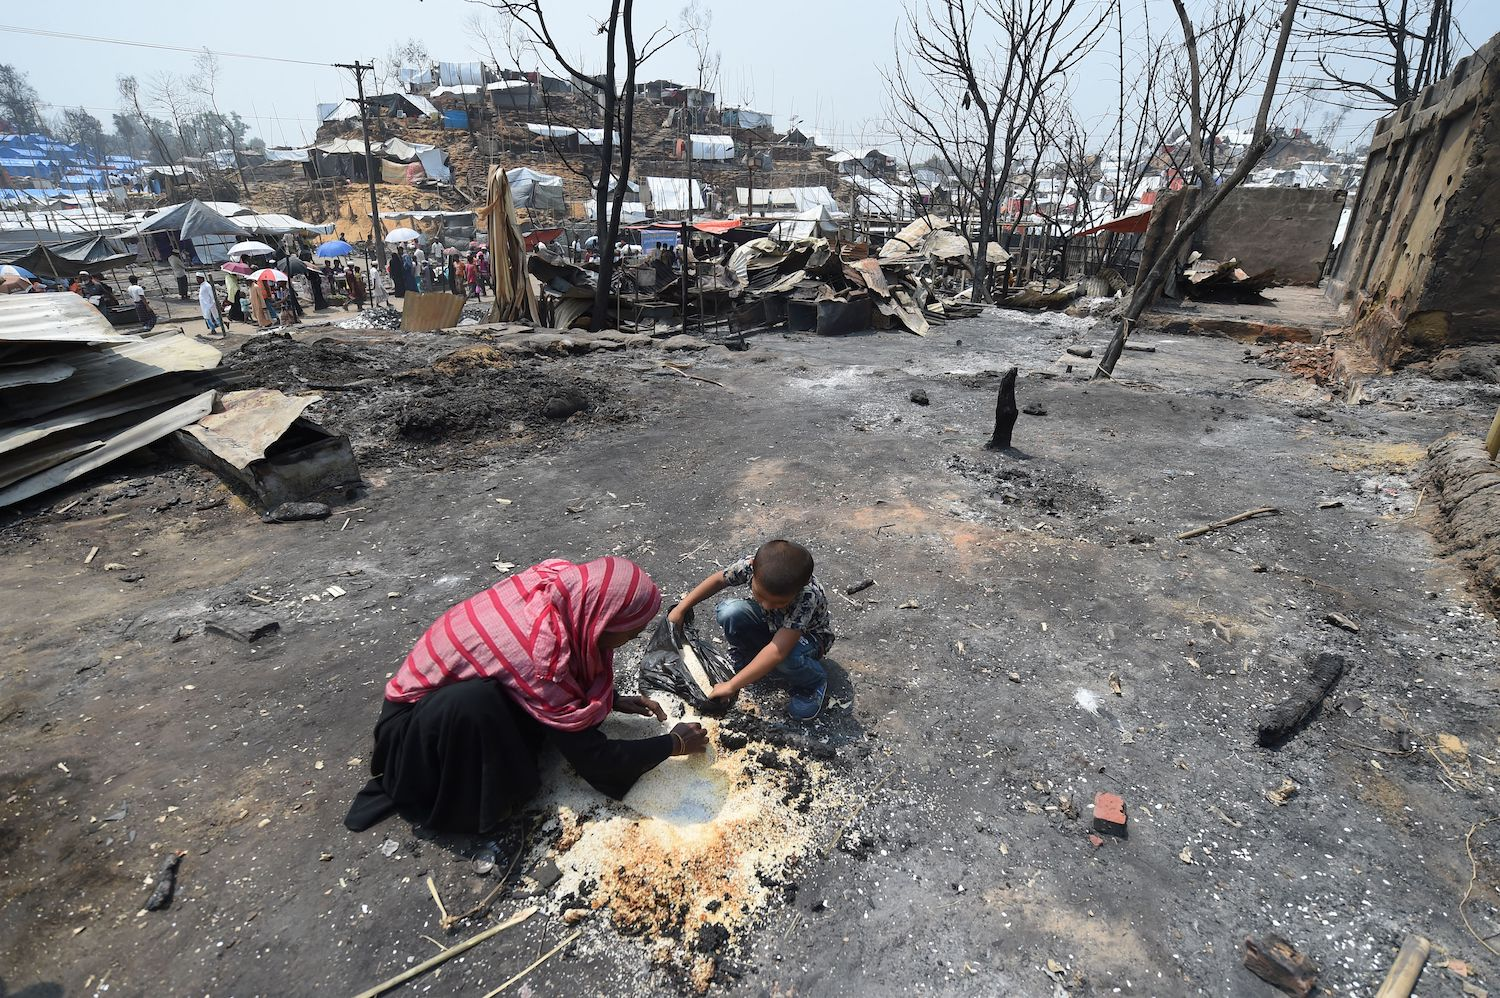 A Rohingya refugee family collects rice after a fire at a refugee camp in Ukhia, Cox's Bazar, Bangladesh, on March 25.